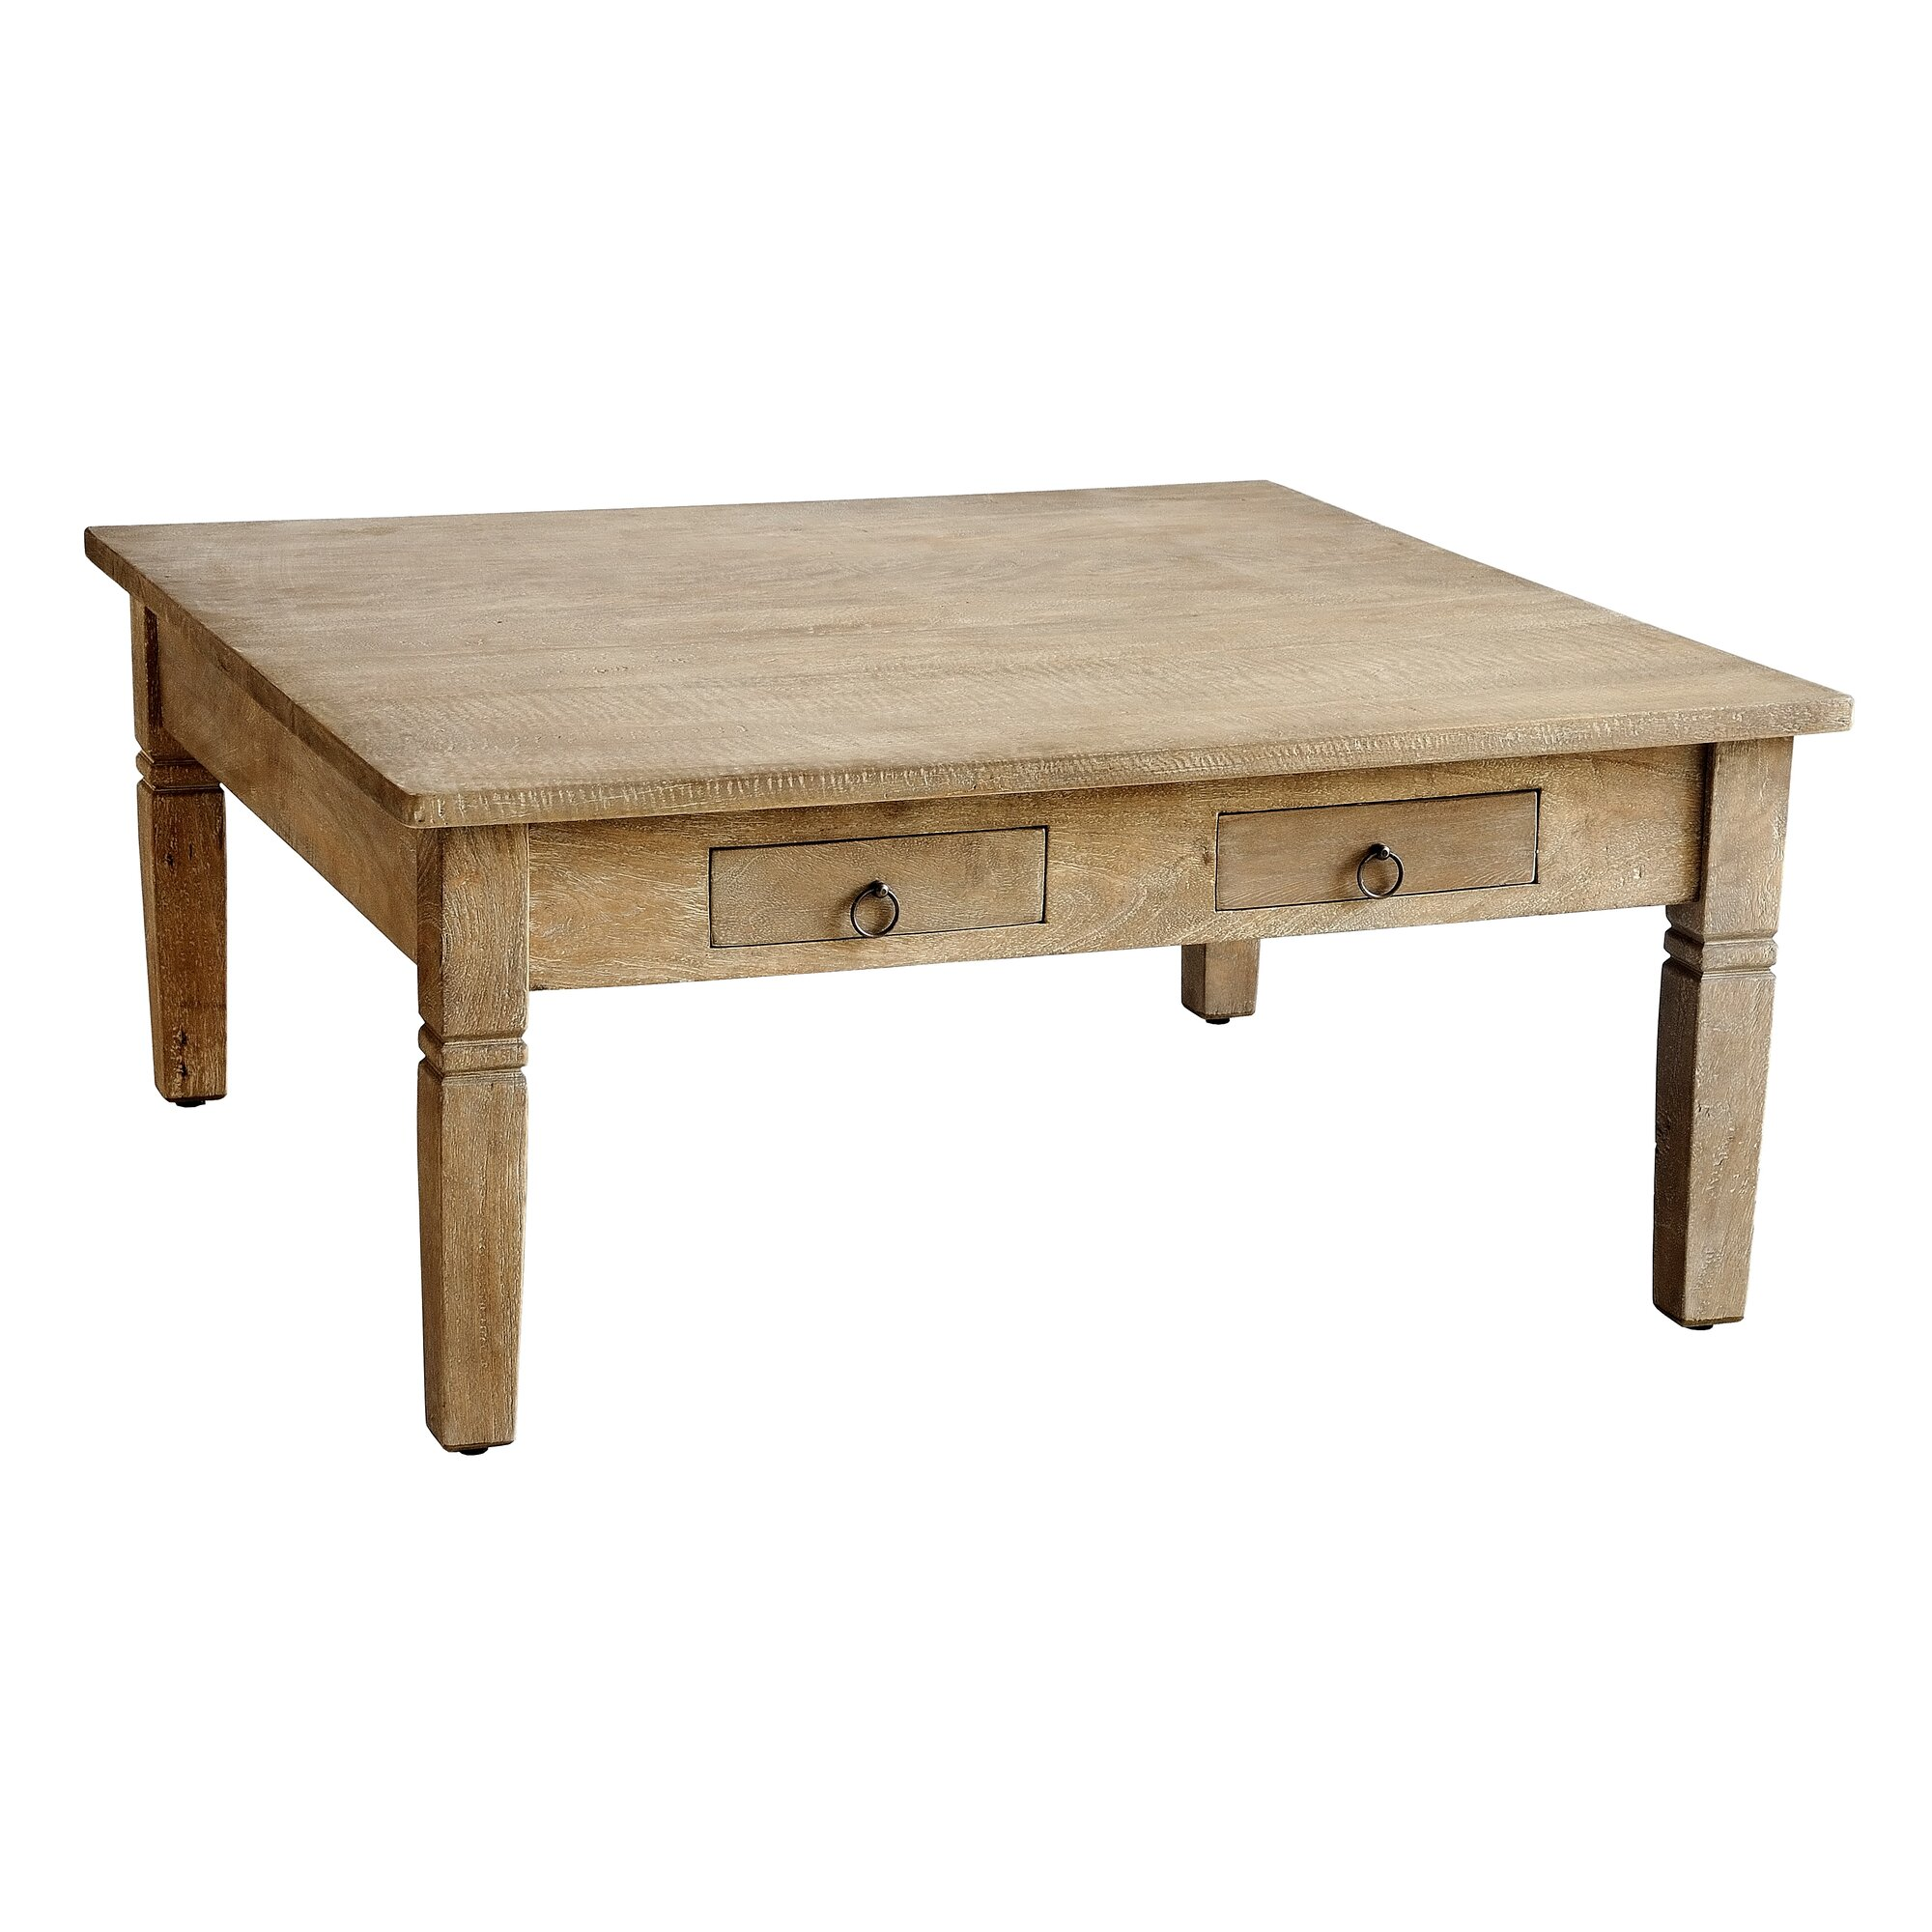 Square Coffee Table: Casual Elements Sedona Square Coffee Table & Reviews